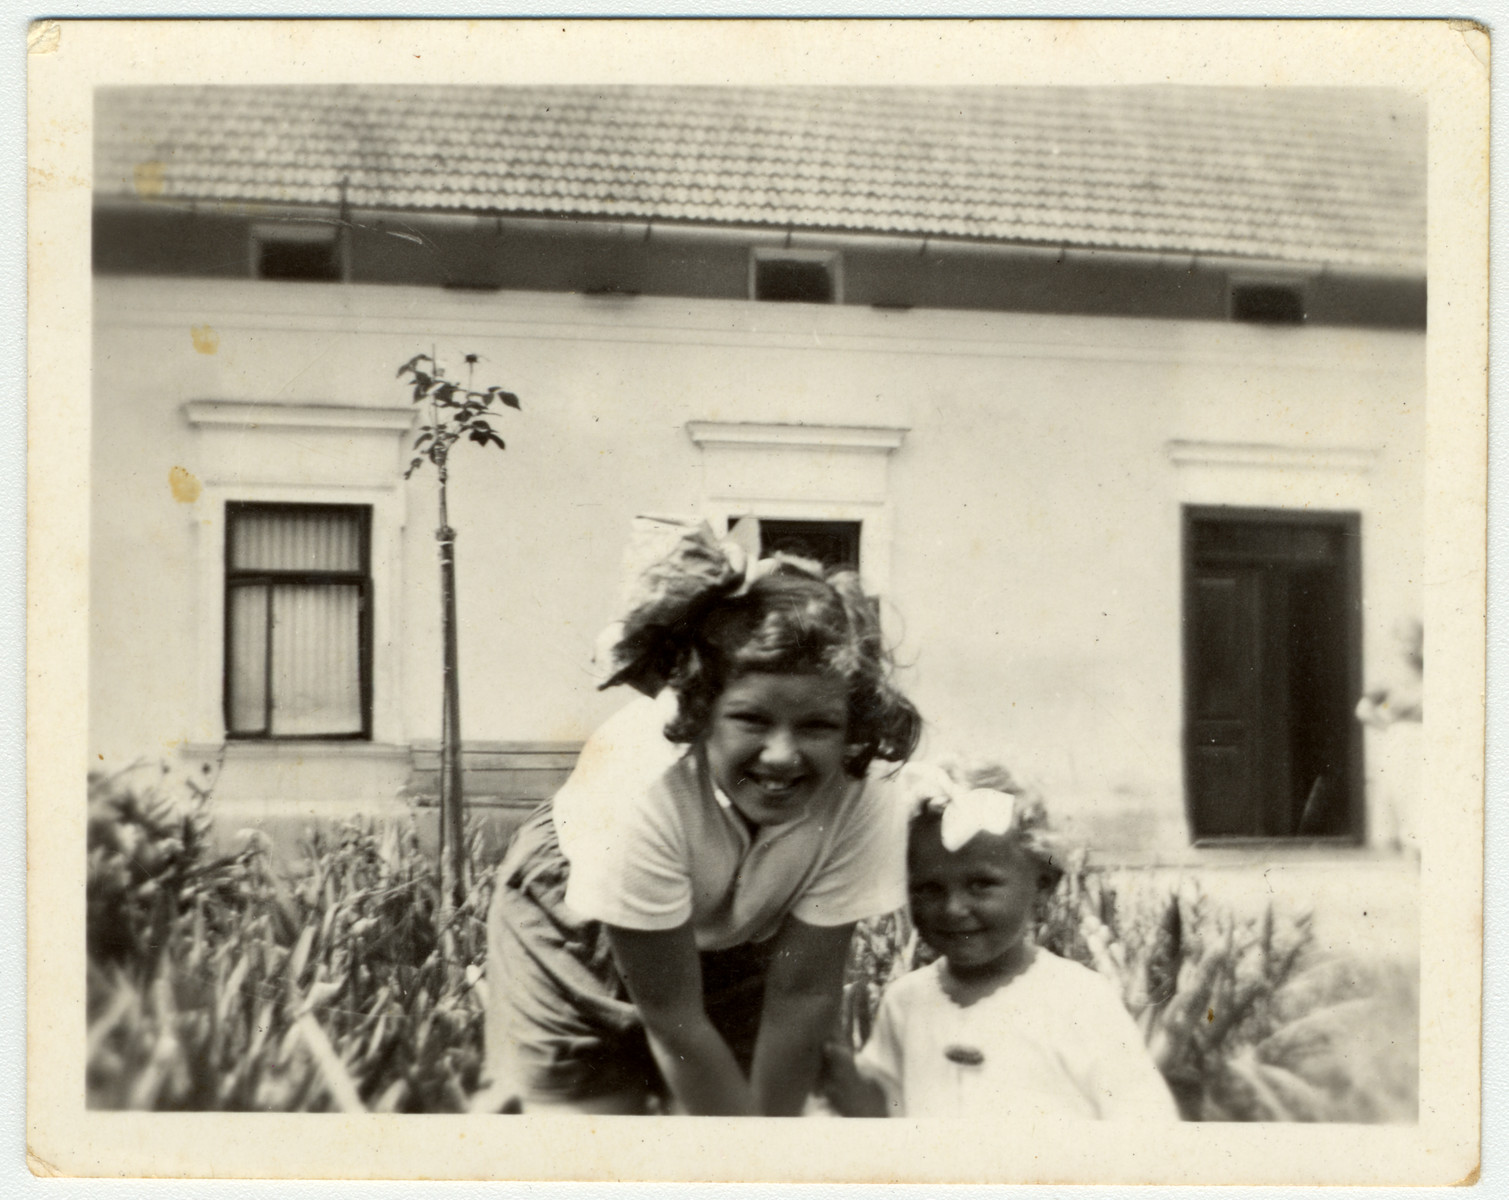 Close-up portrait of two Jewish children outside in the yard outside a building in Kniaze.